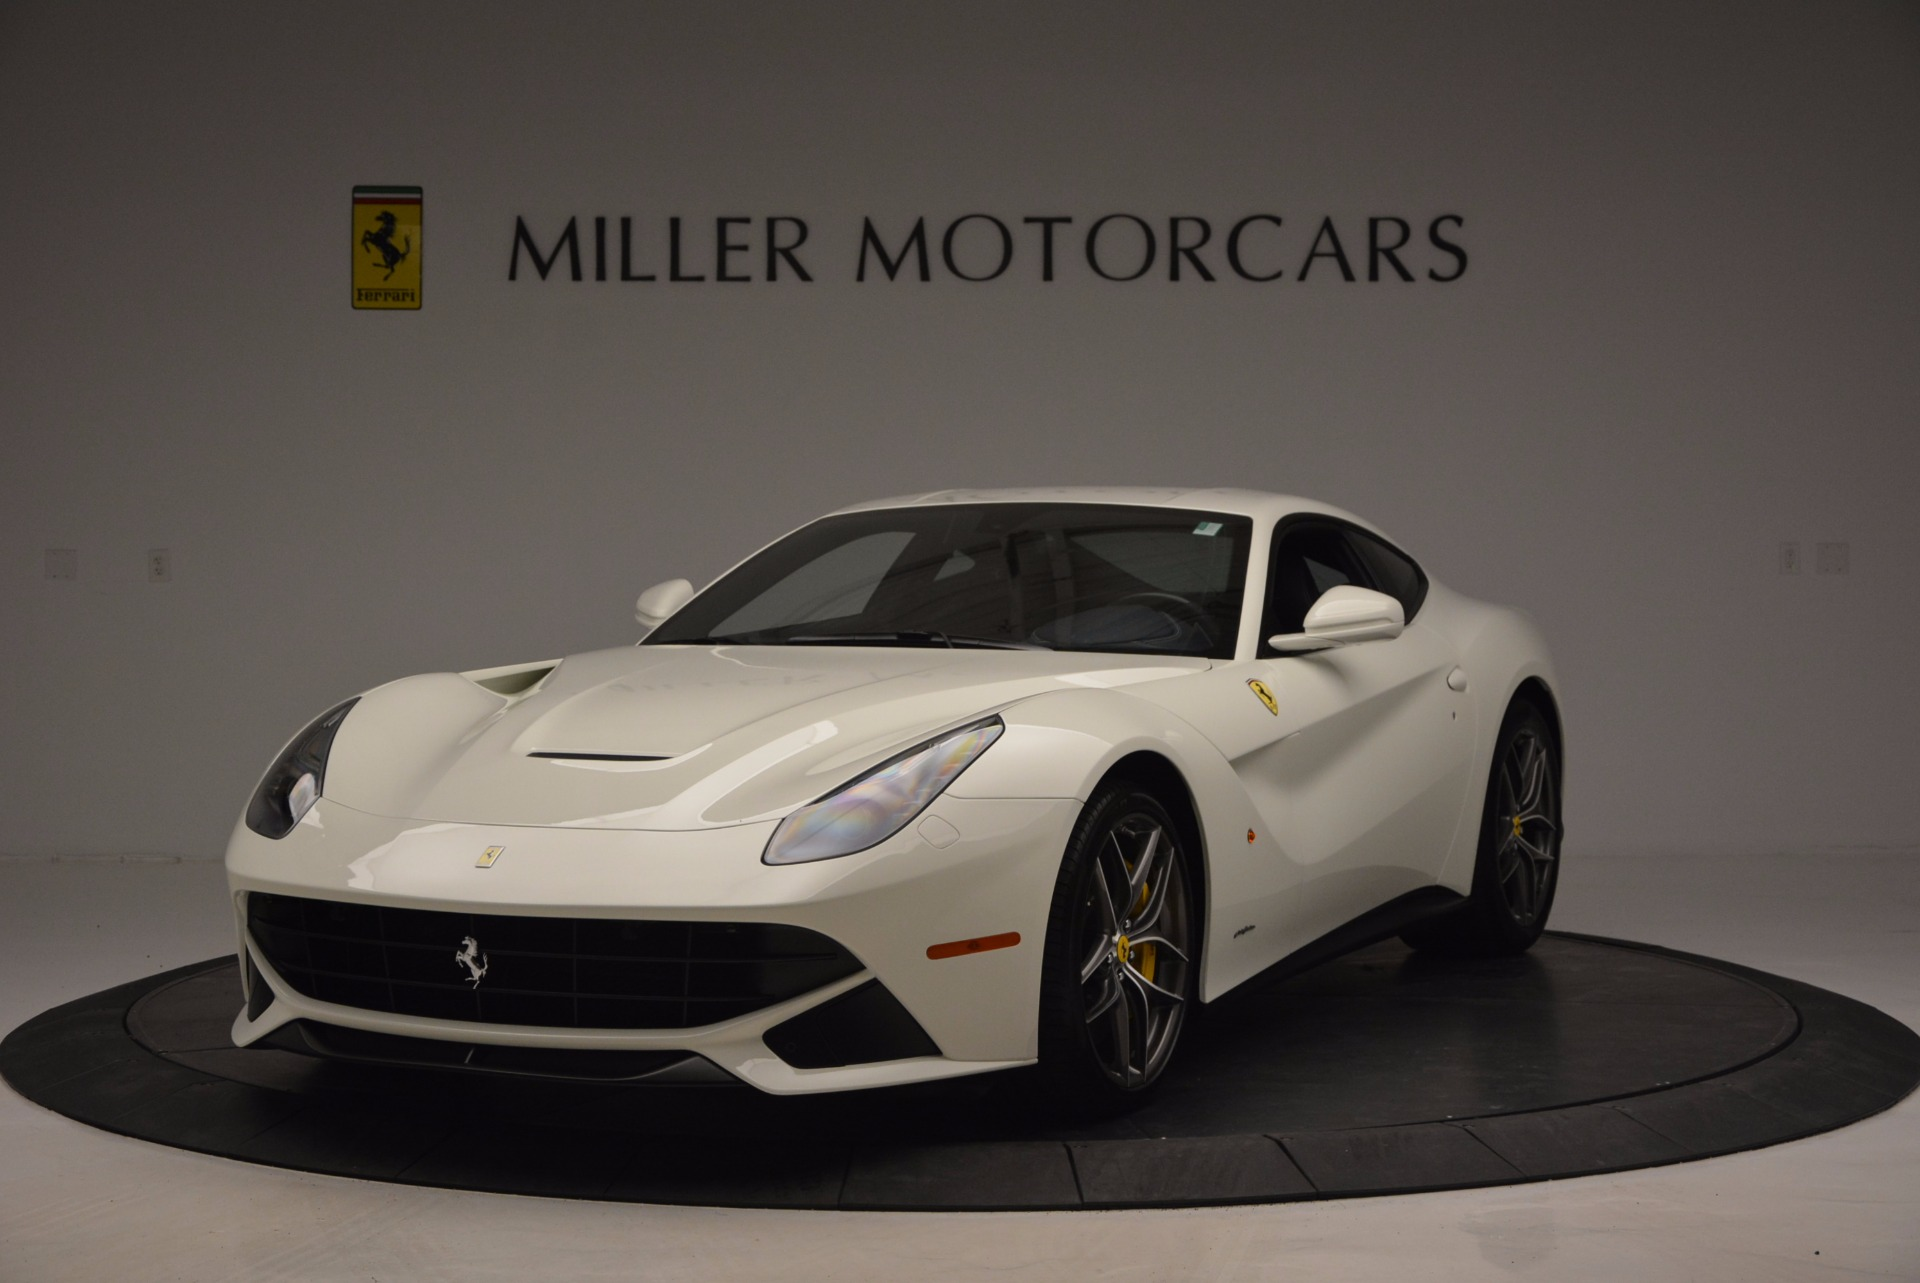 Used 2017 Ferrari F12 Berlinetta for sale Sold at Alfa Romeo of Westport in Westport CT 06880 1